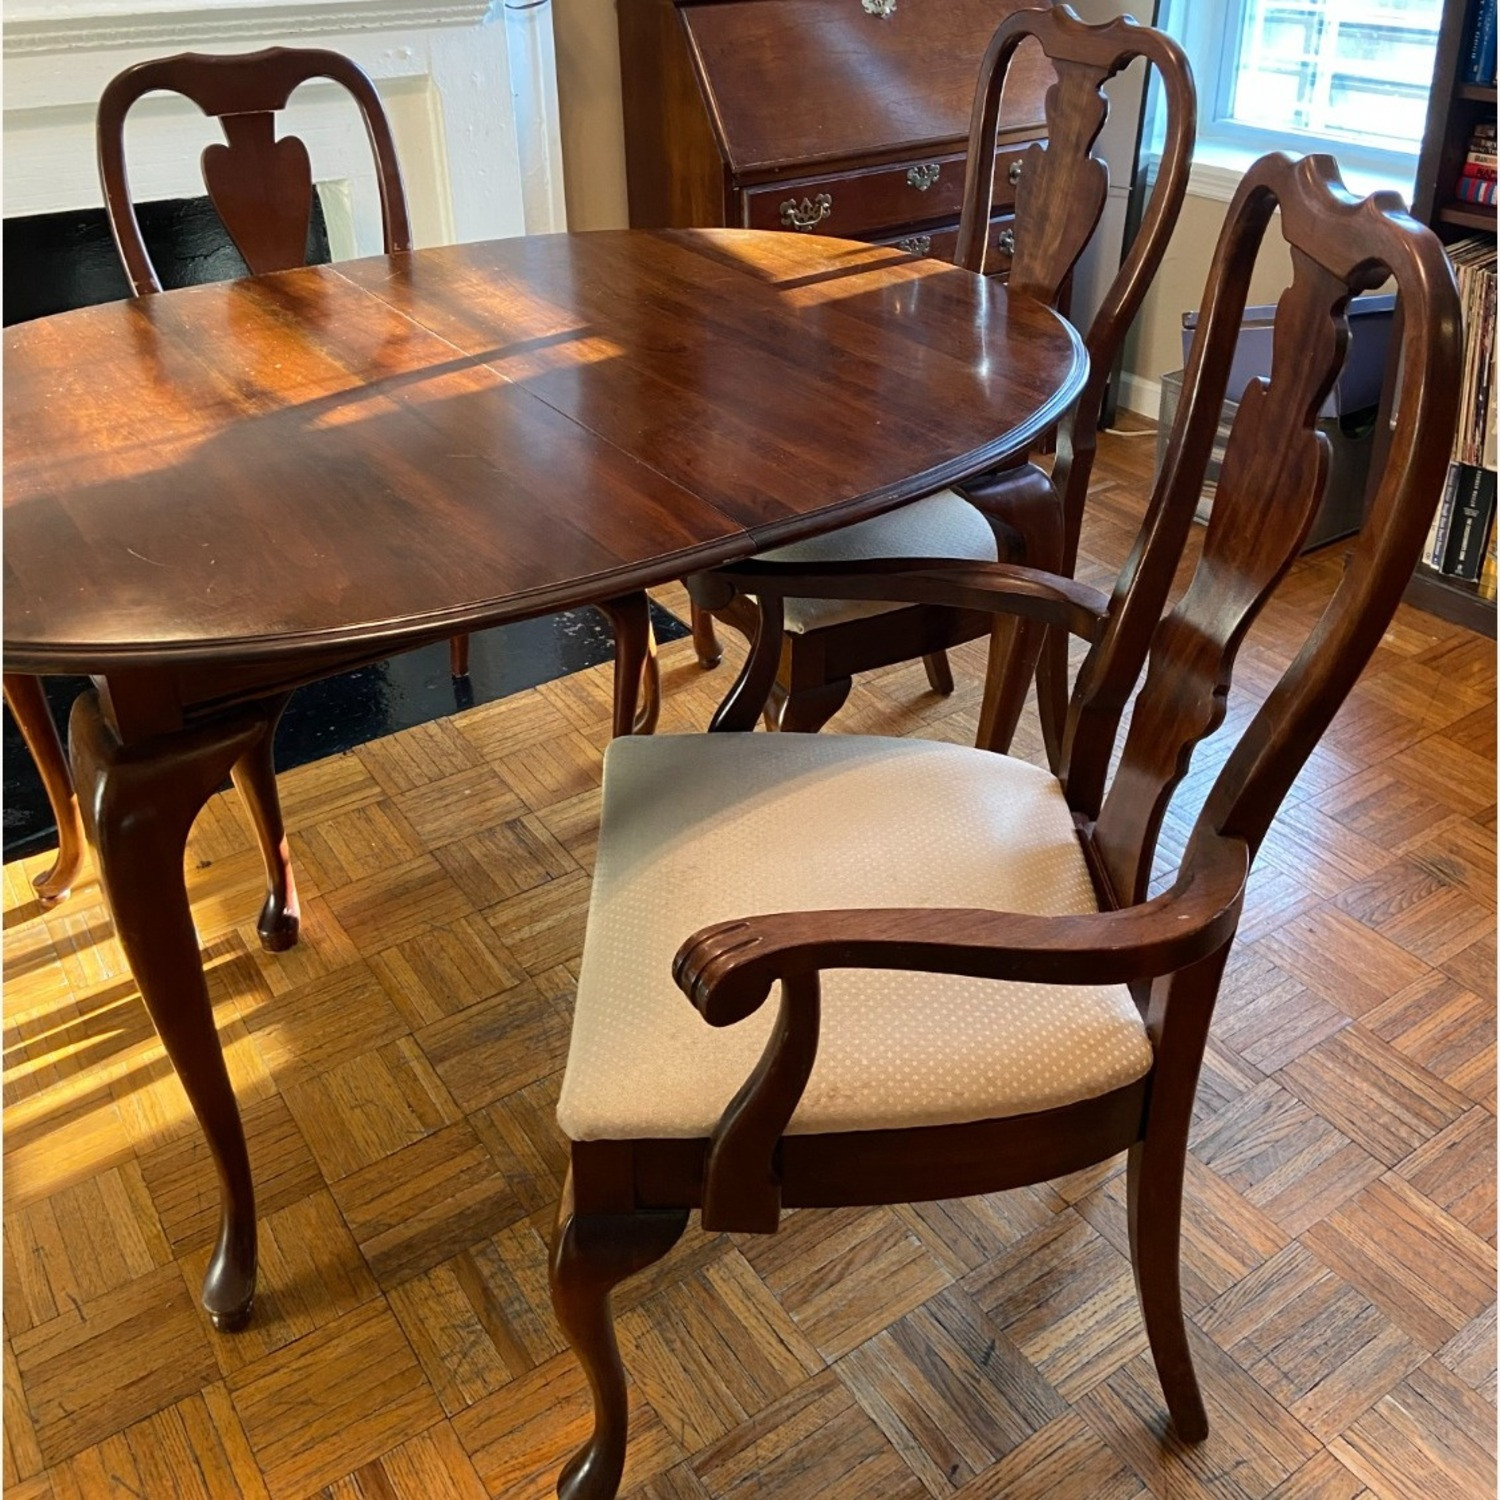 Antique Mahogany Dining Room Set - image-2